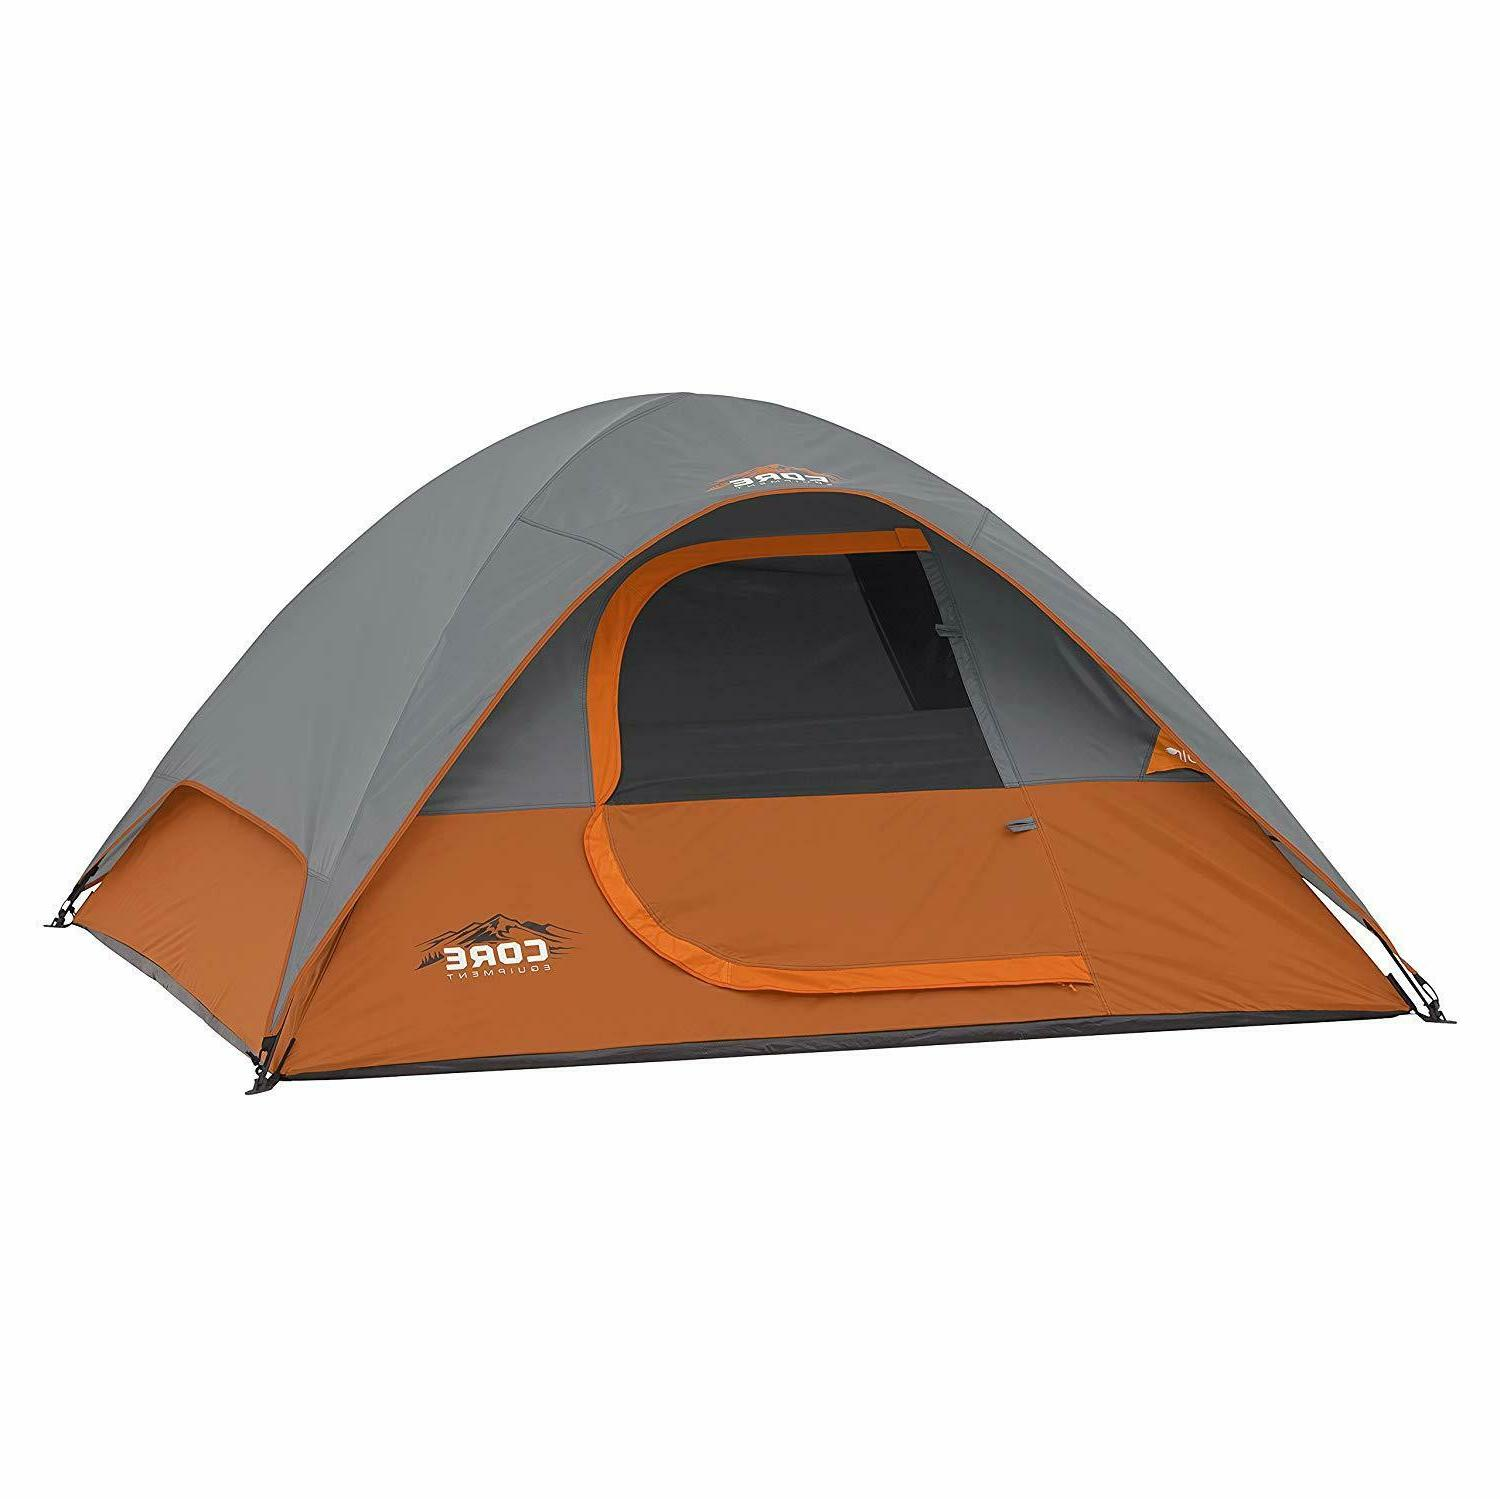 camping tent dream 3 person tent